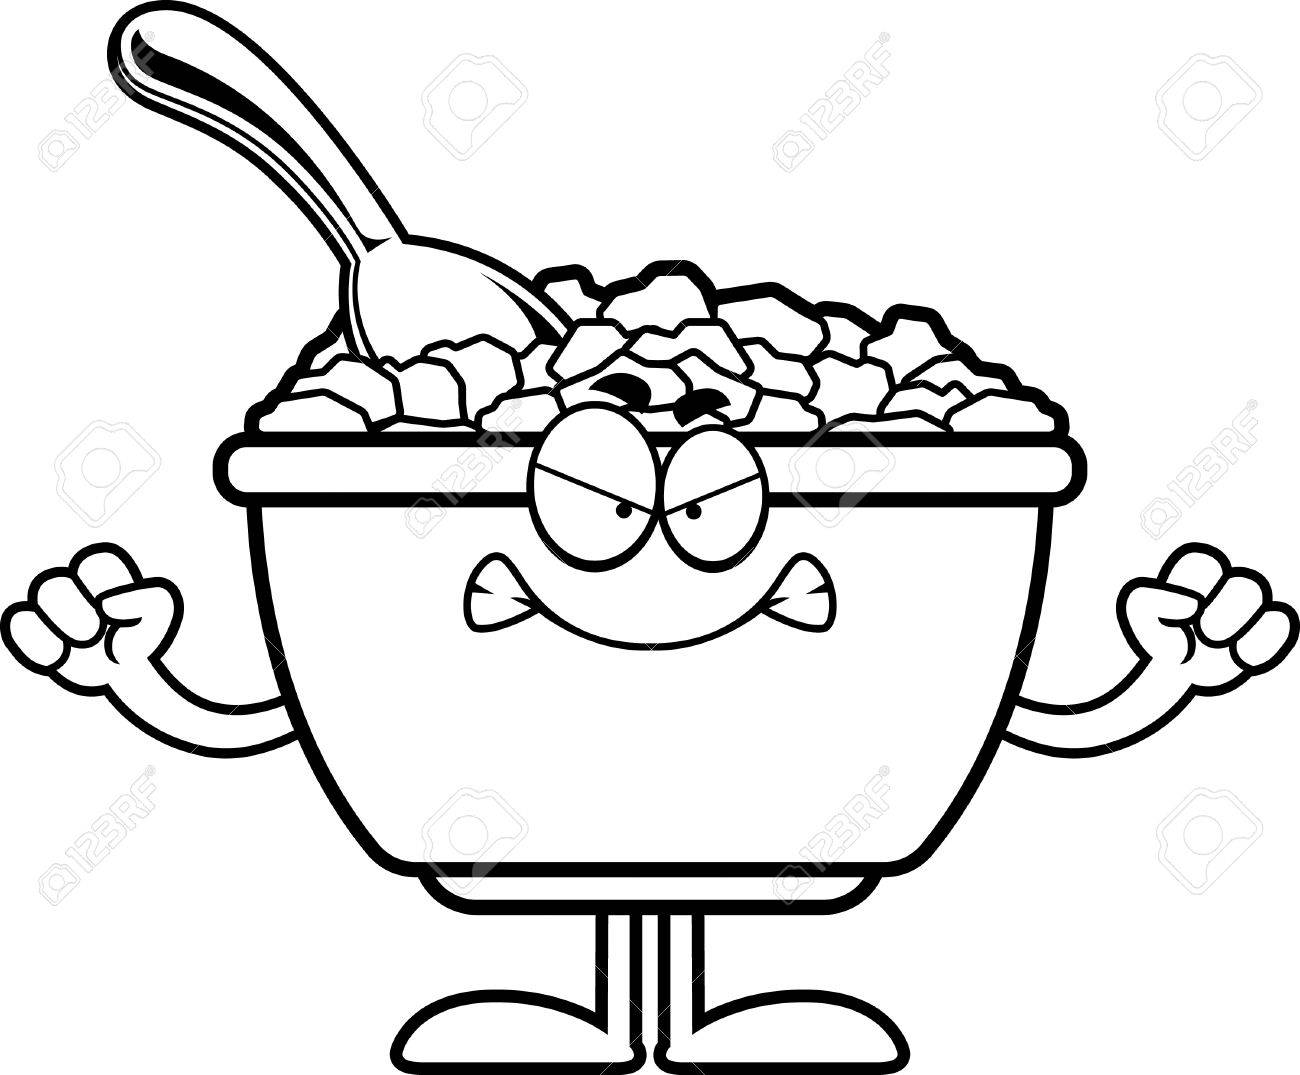 1300x1075 A Cartoon Illustration Of A Bowl Of Cereal Looking Angry. Royalty